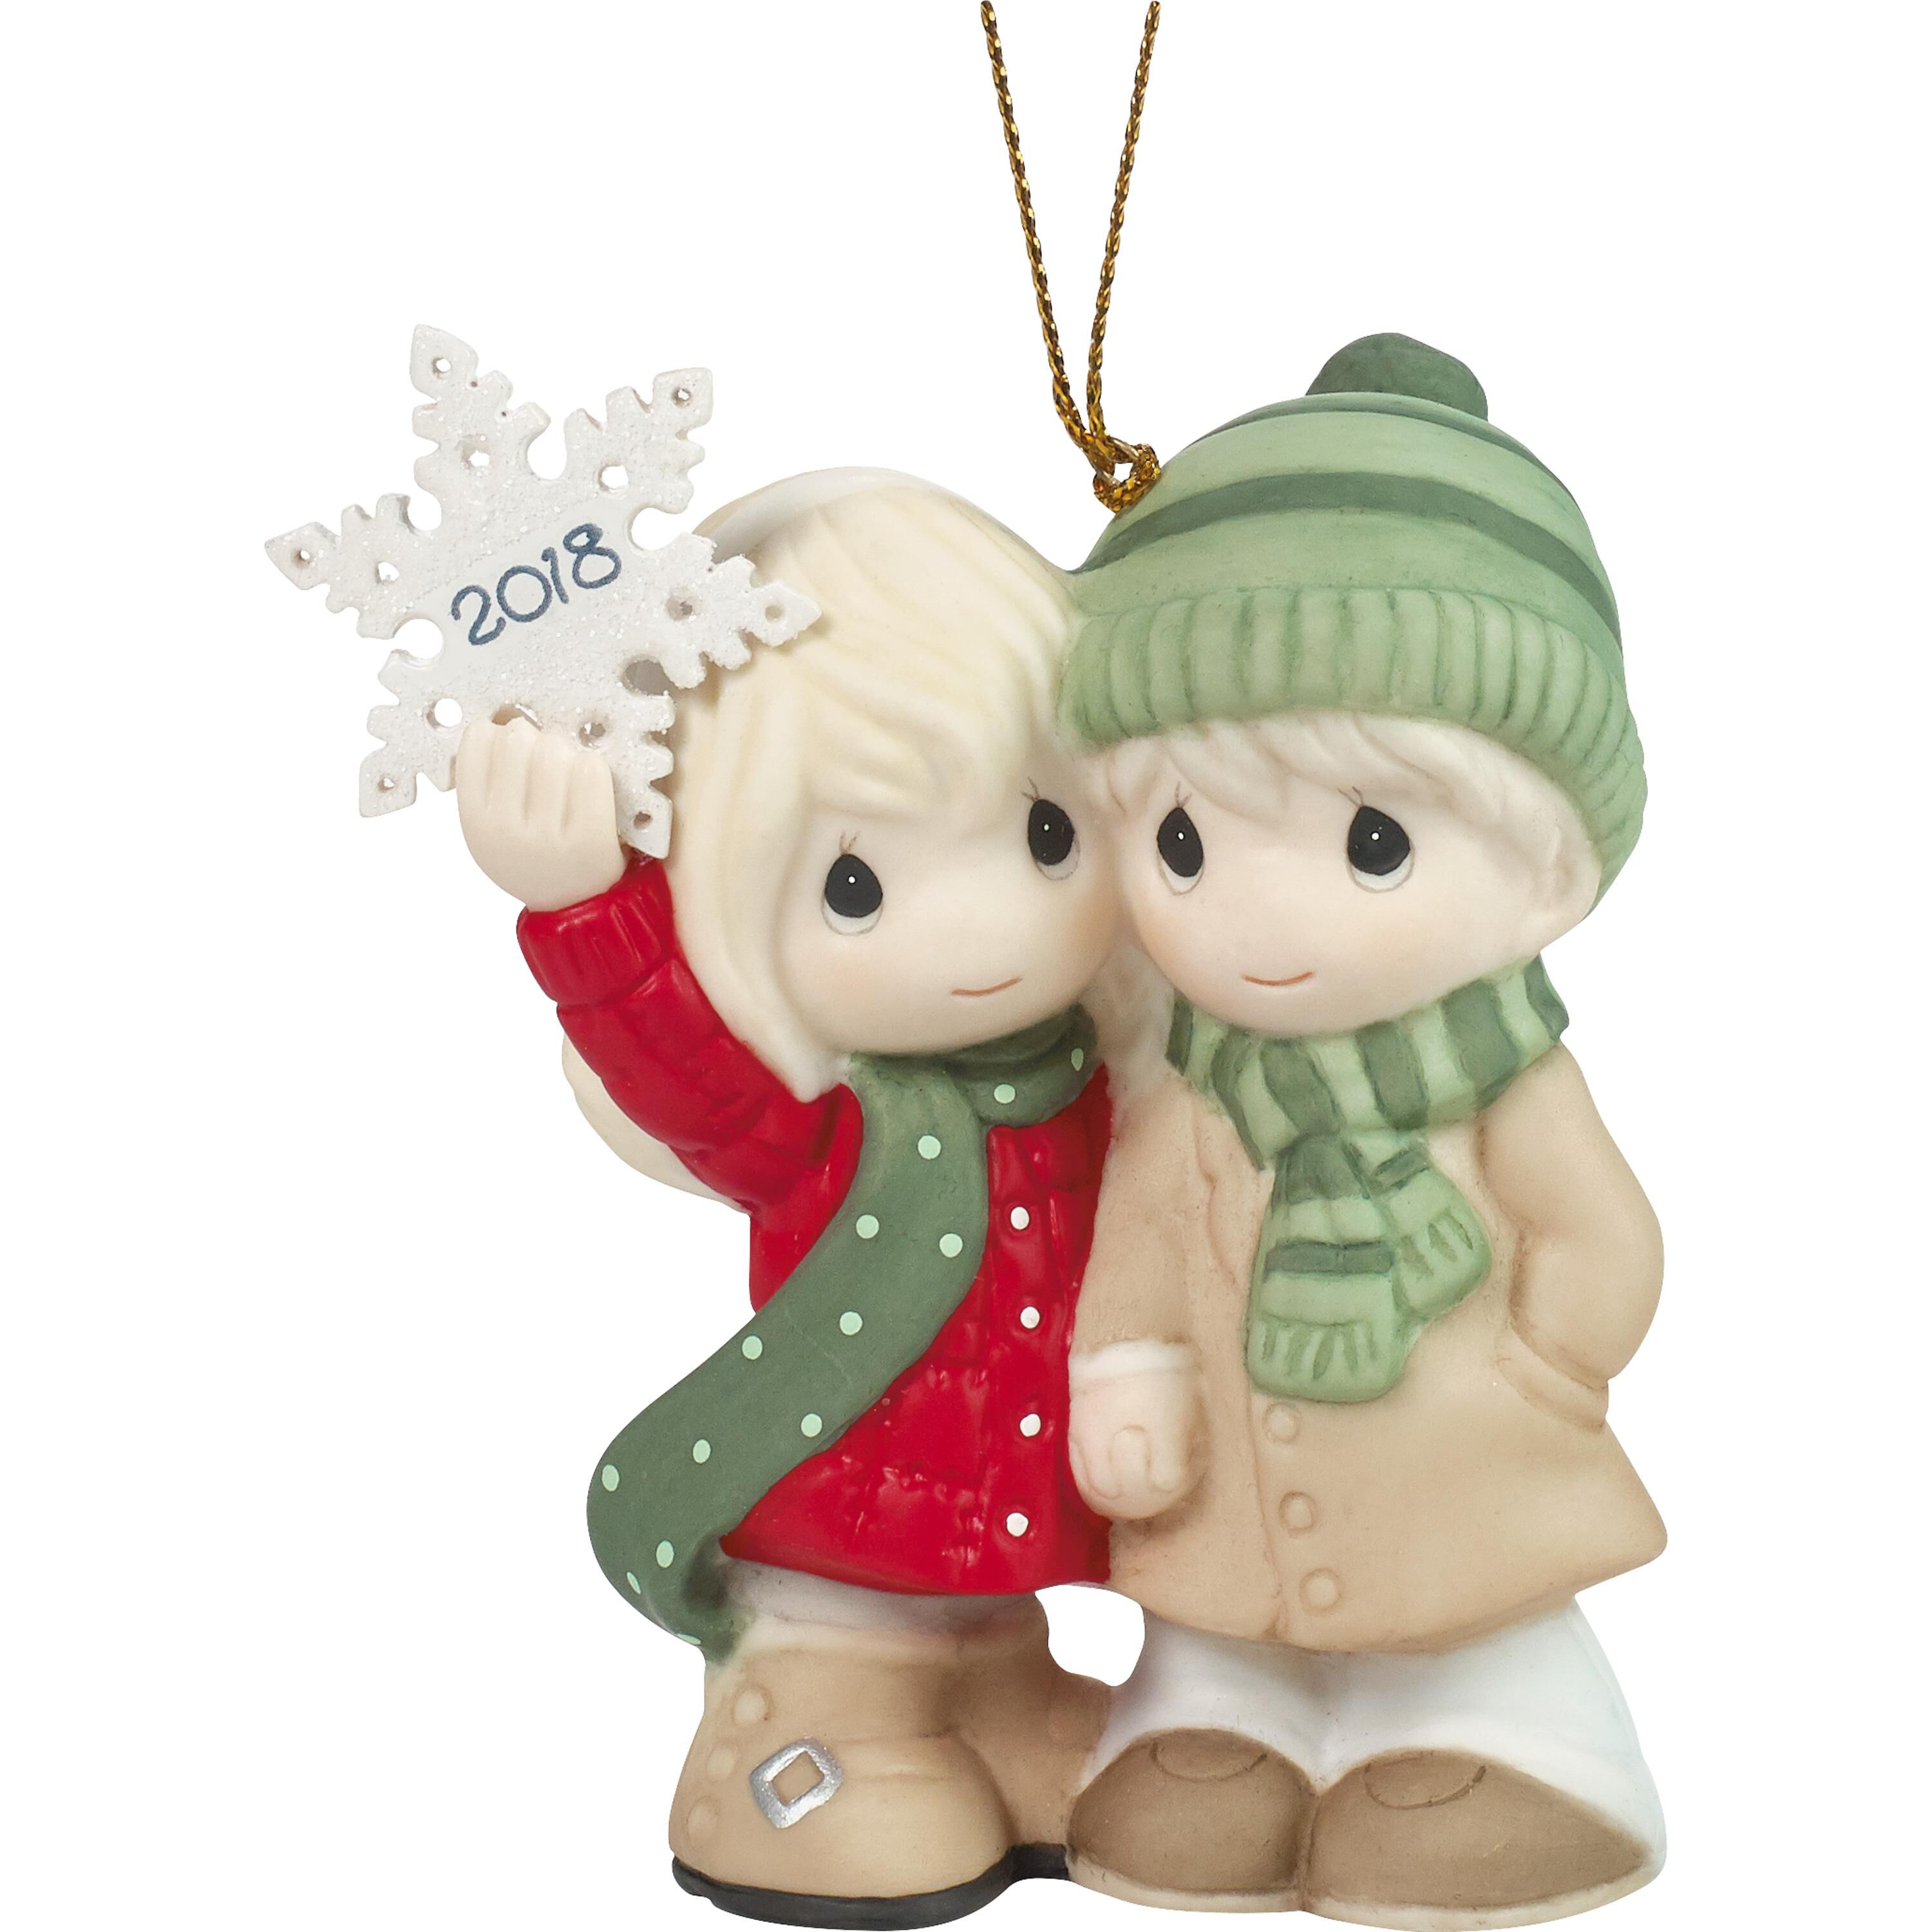 Precious Moments Our First Christmas Together 2018 Ornament ...